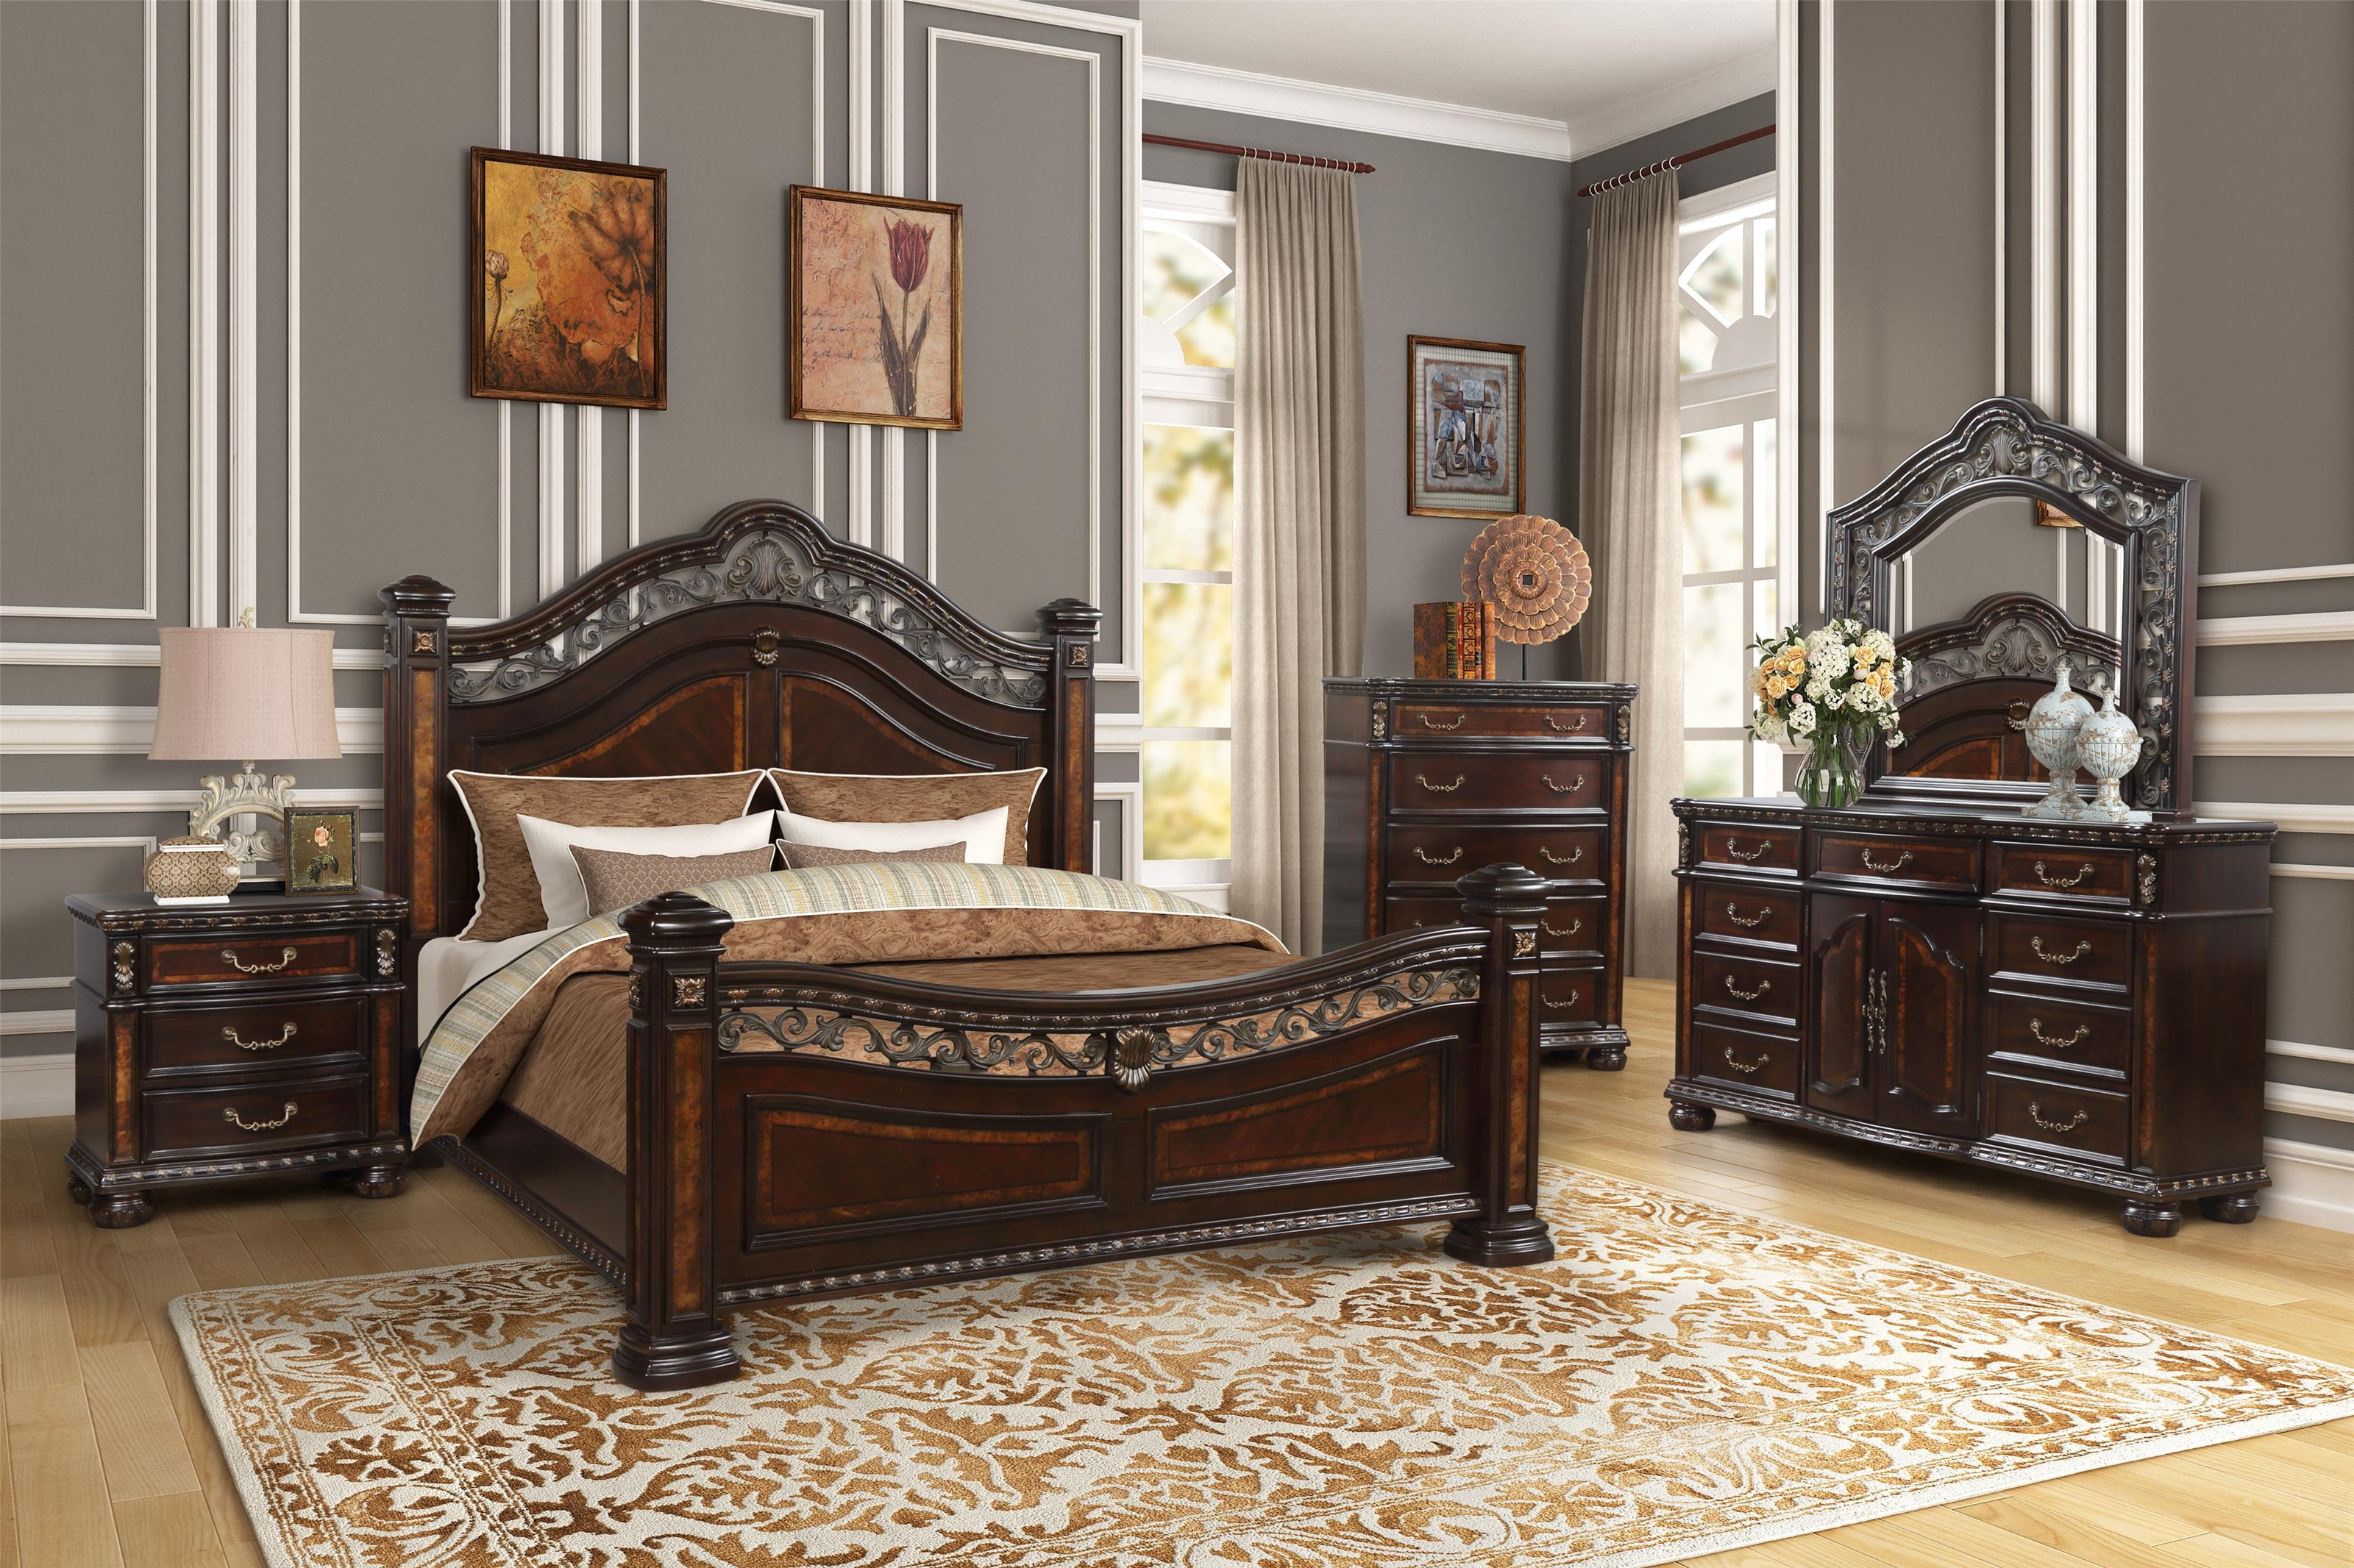 163 6PC KG BEDROOM by Household Furniture Direct at Household Furniture